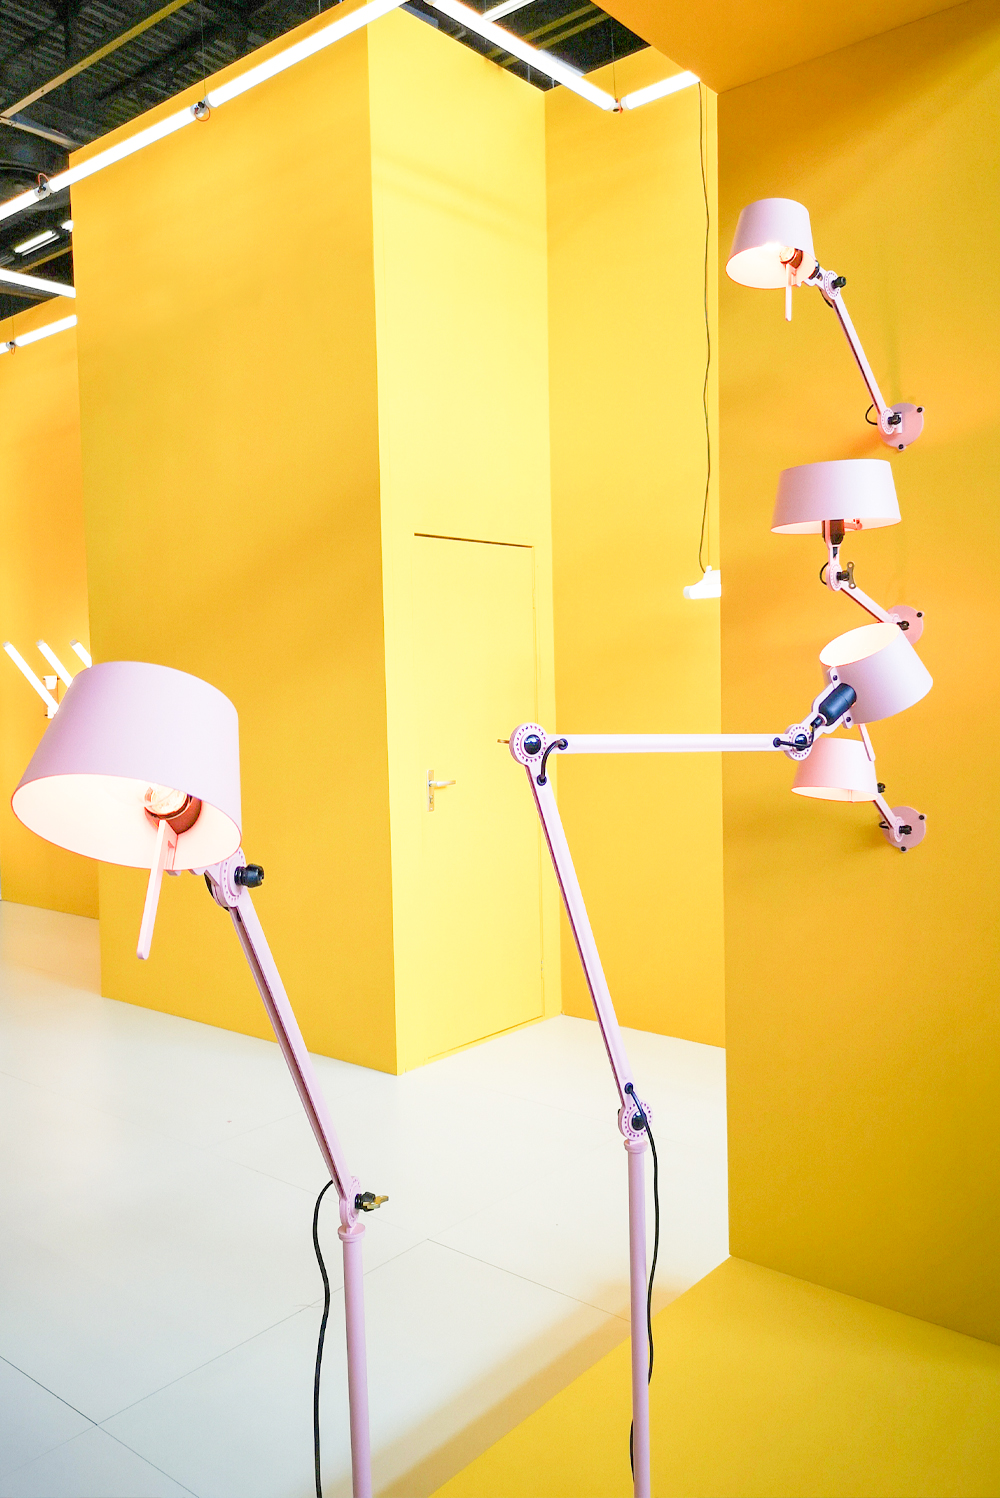 JOELIX.com - Maison & Objet september 2019 #tonone #yellow #mo19